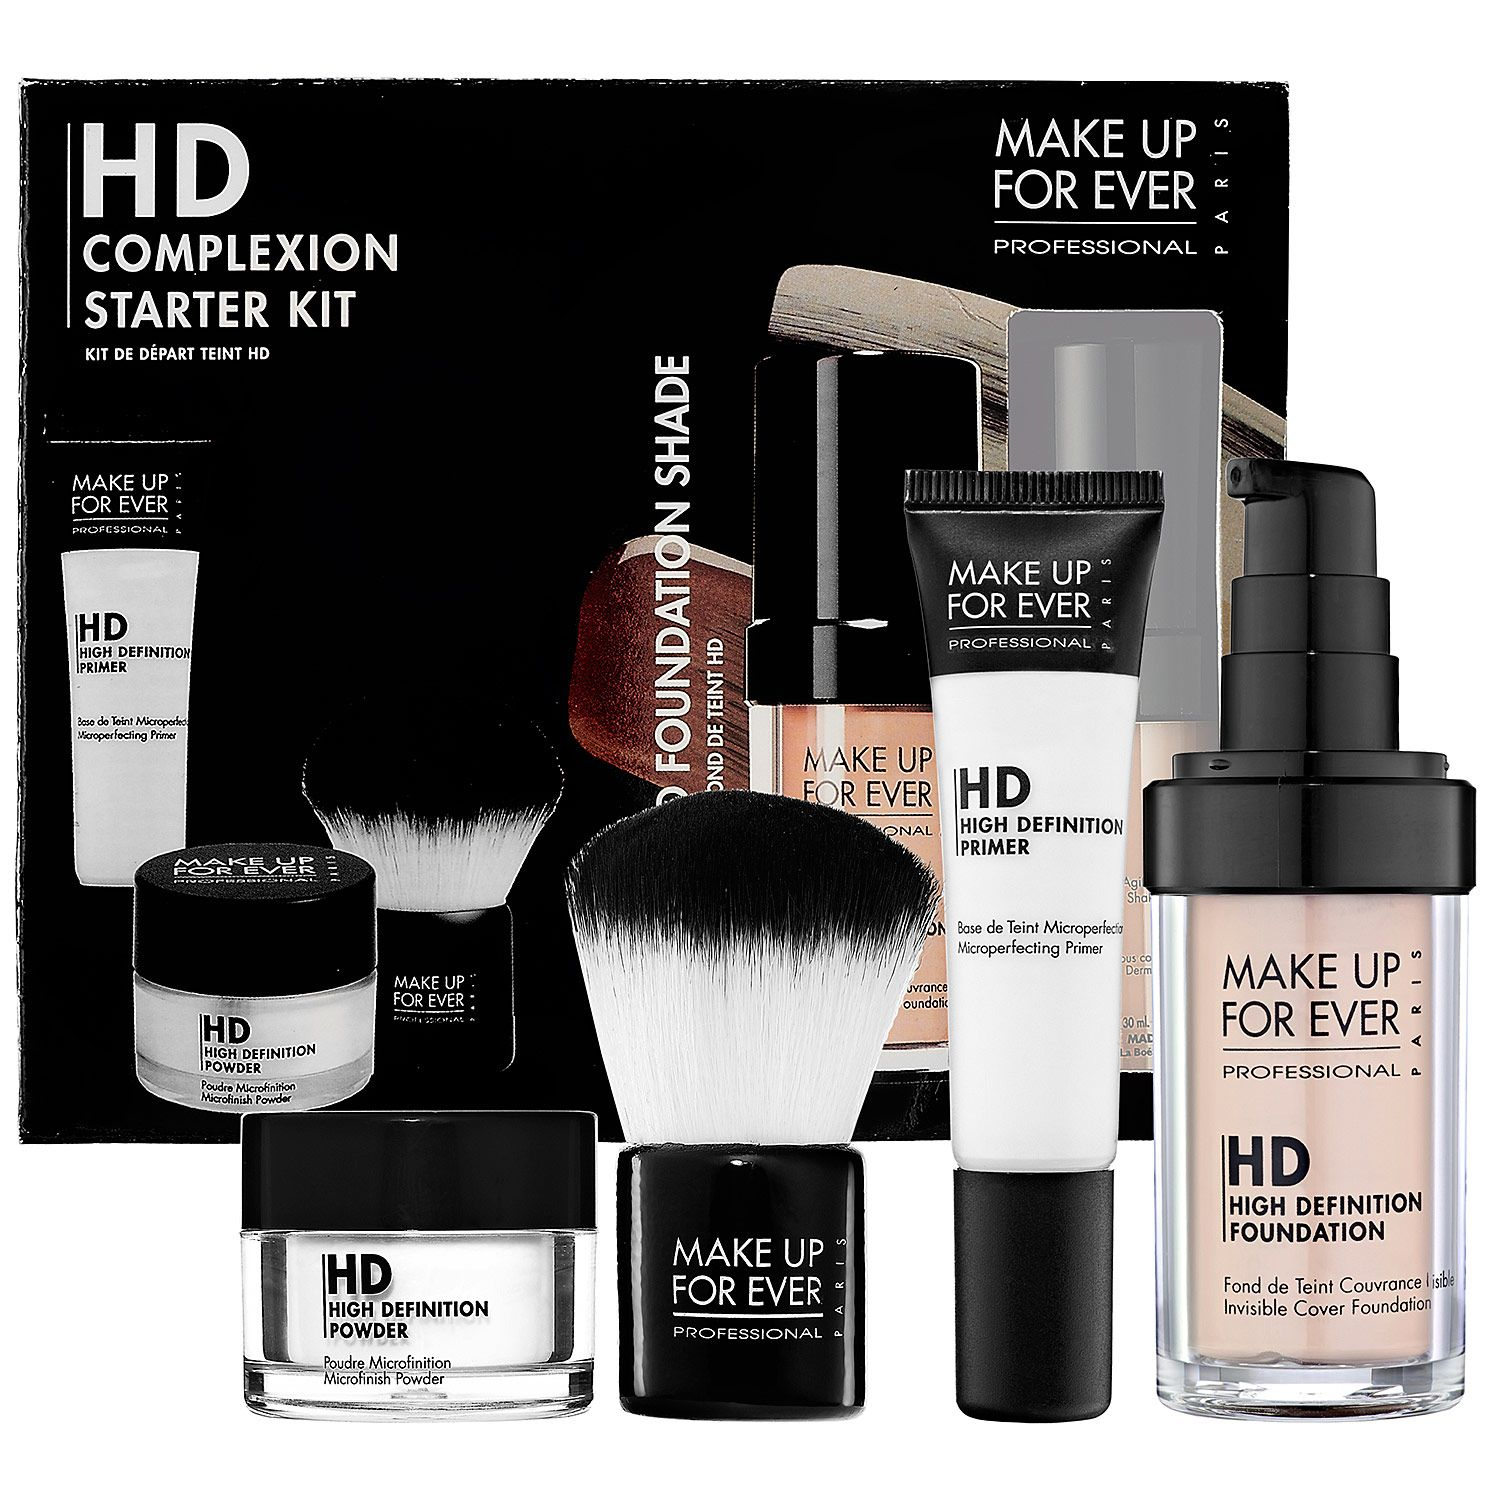 MAKE UP FOR EVER HD Complexion Starter Kit Sephora